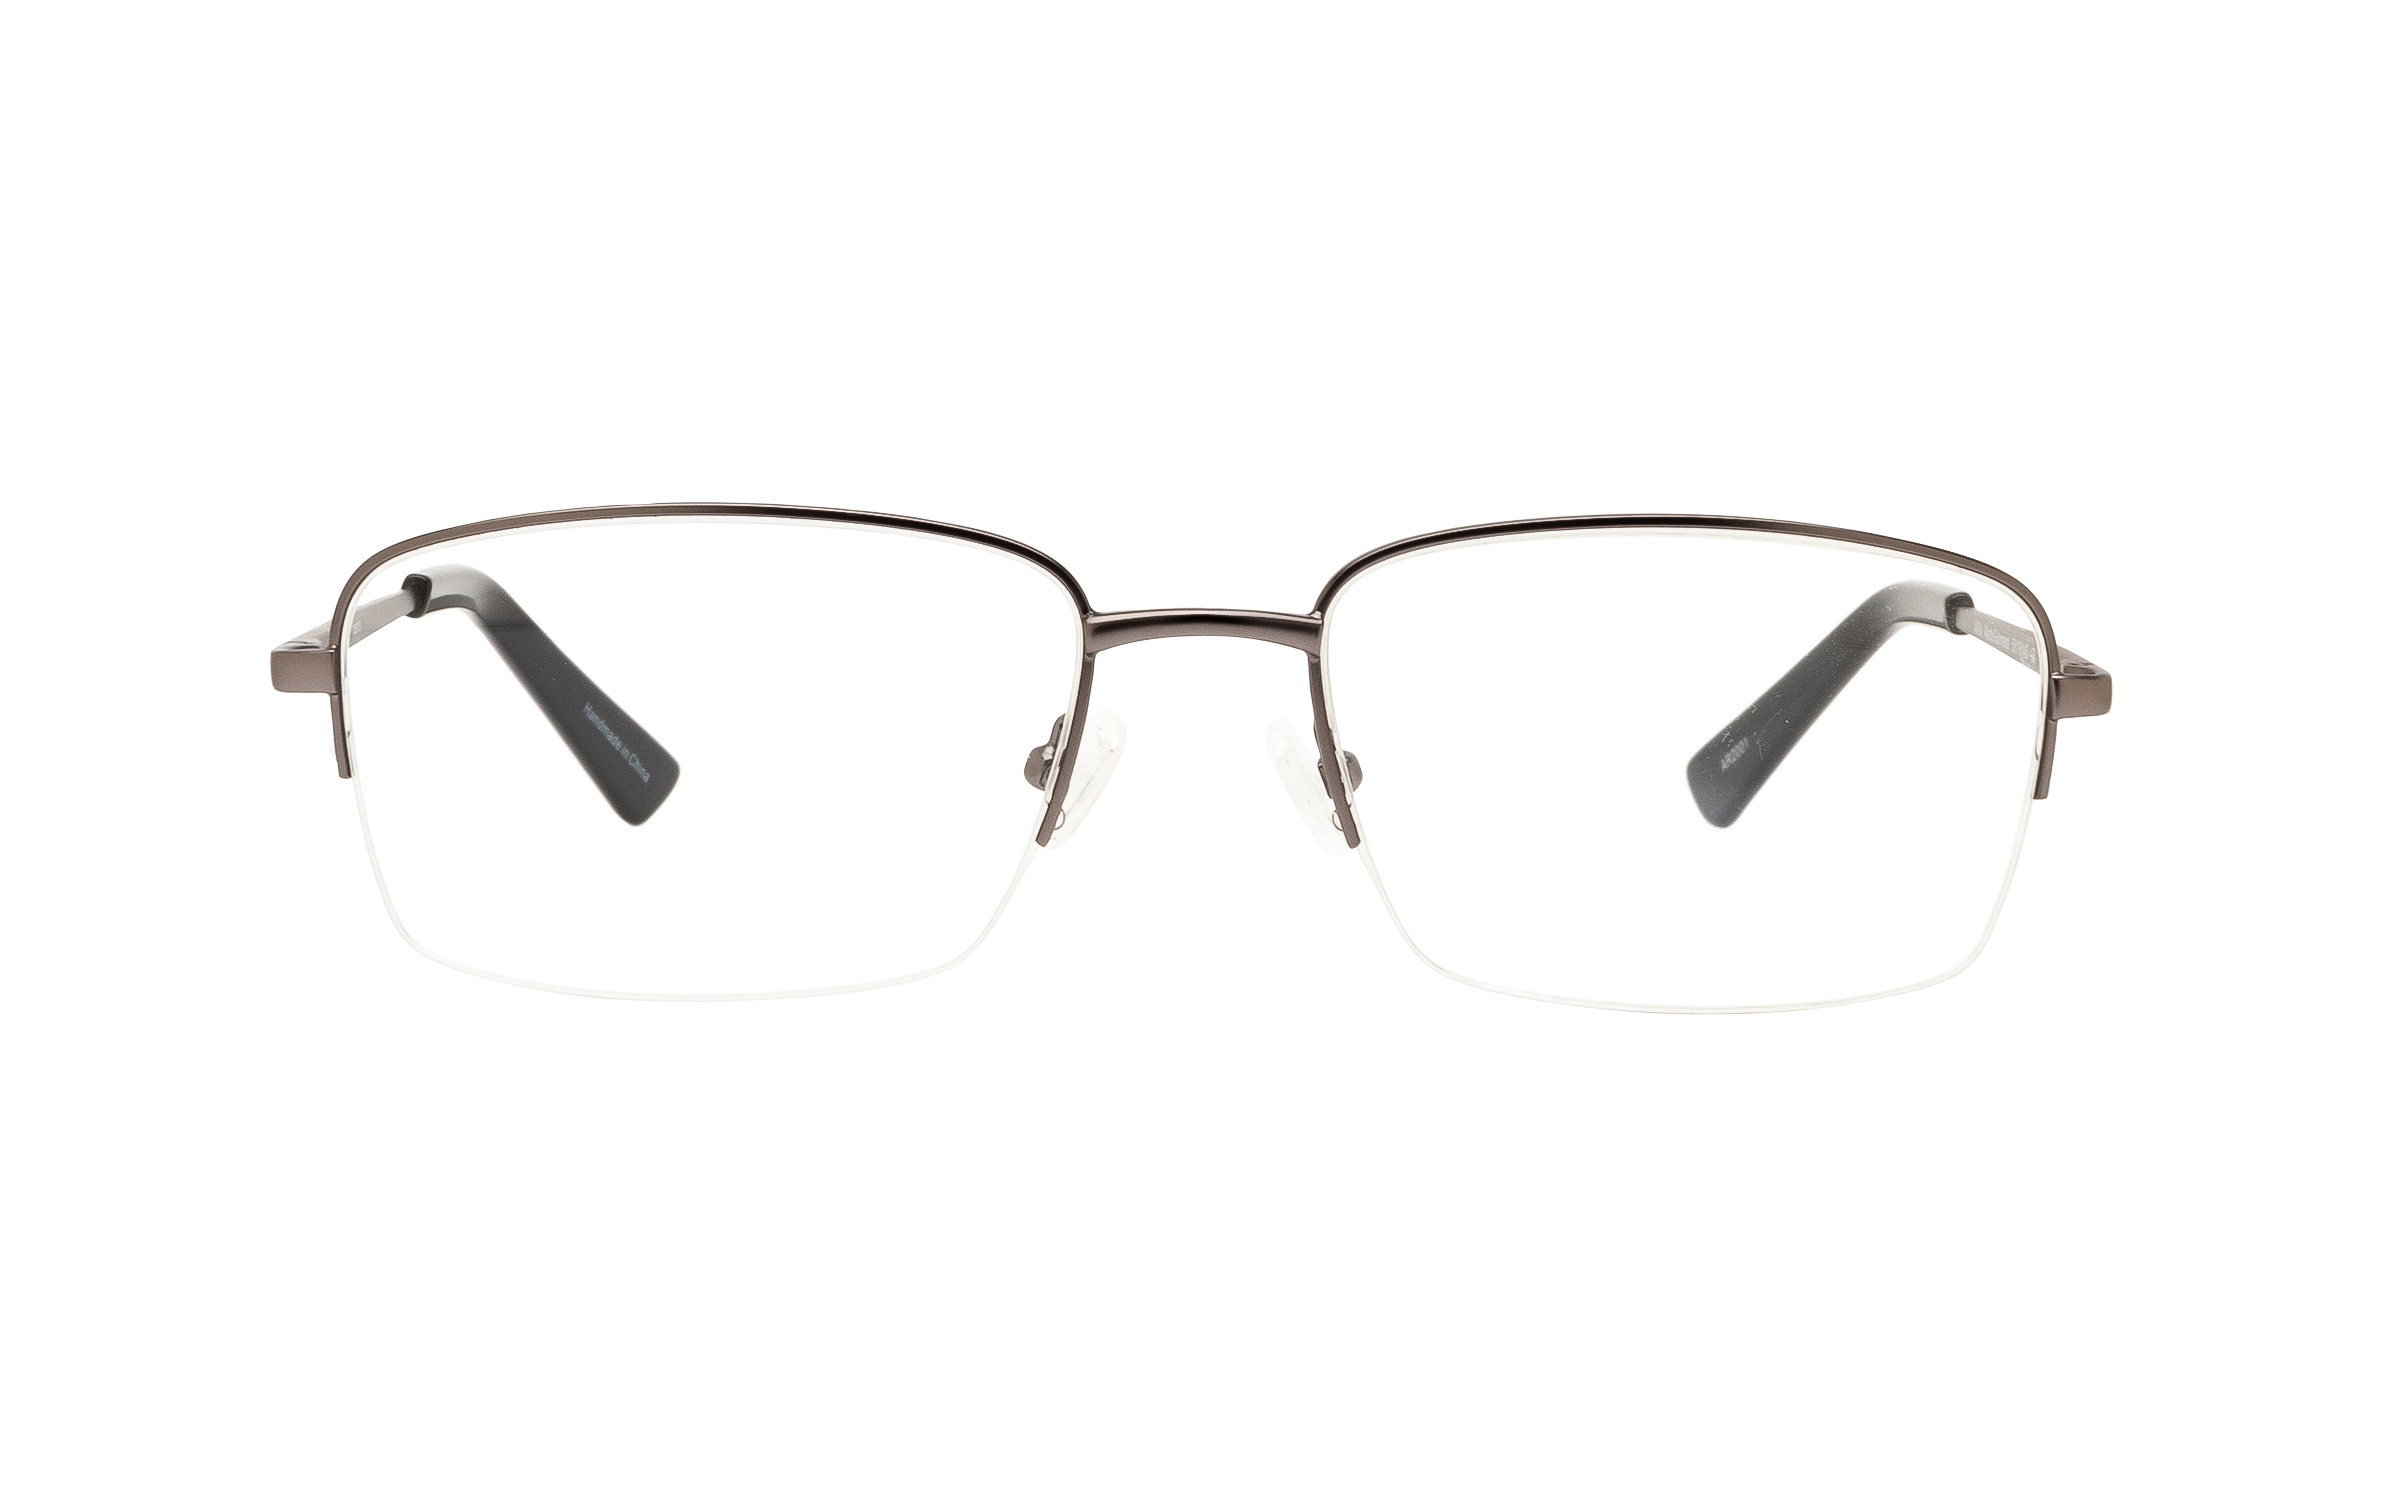 http://www.coastal.com/ - Clearly Basics Aillik CLS061 C02 (58) Eyeglasses and Frame in Matte Gunmetal Grey – Online Coastal